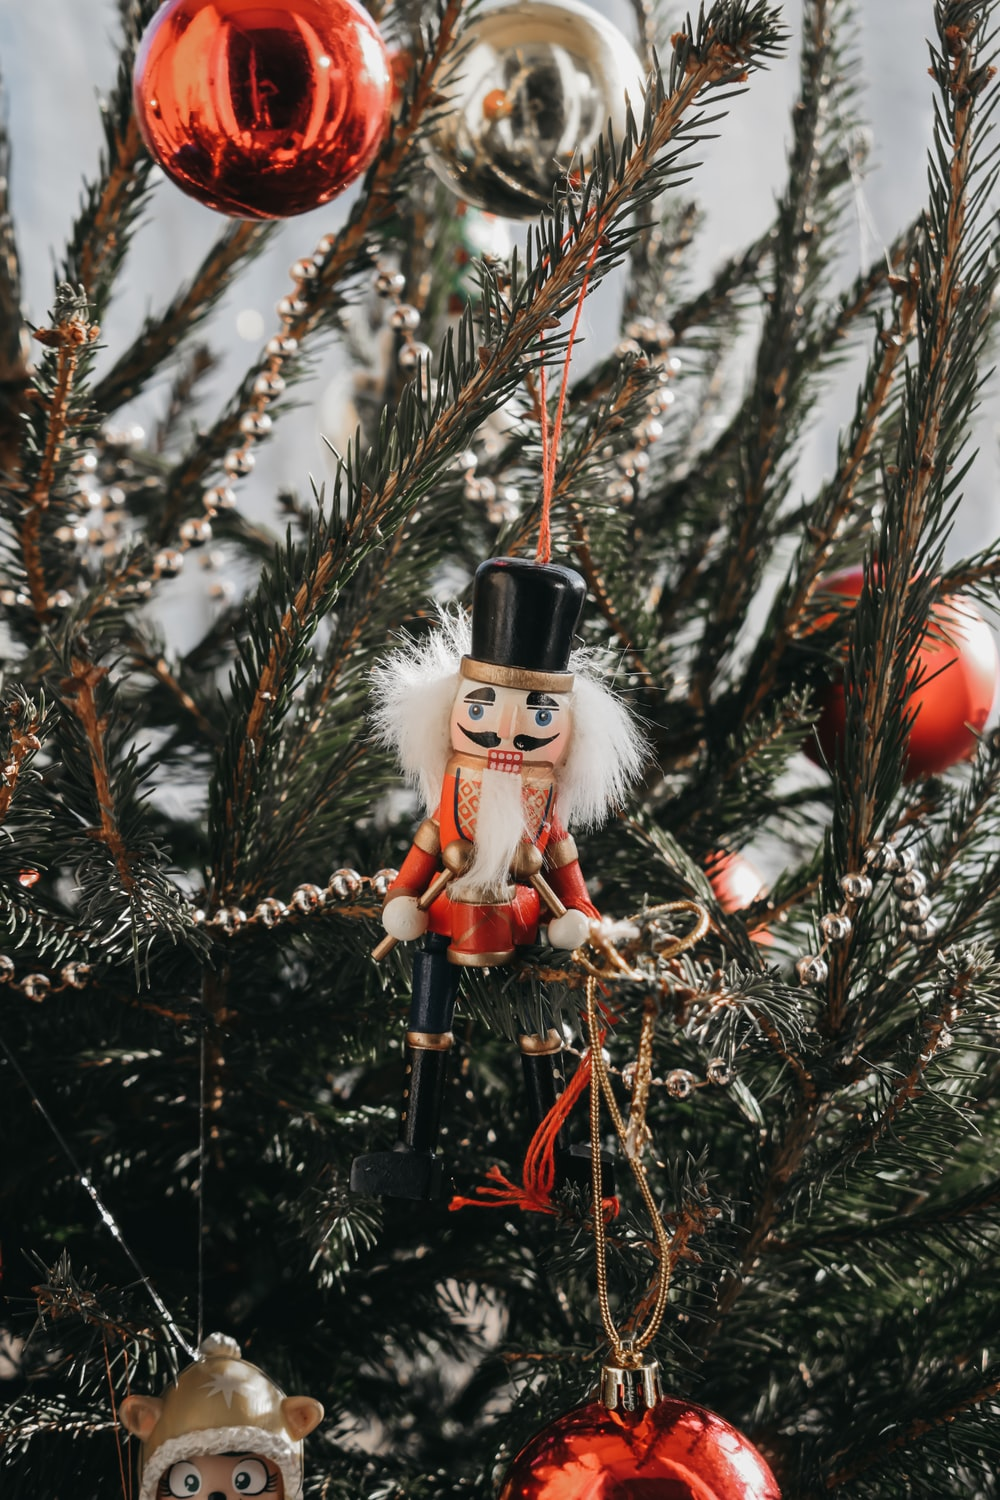 red and white snowman figurine